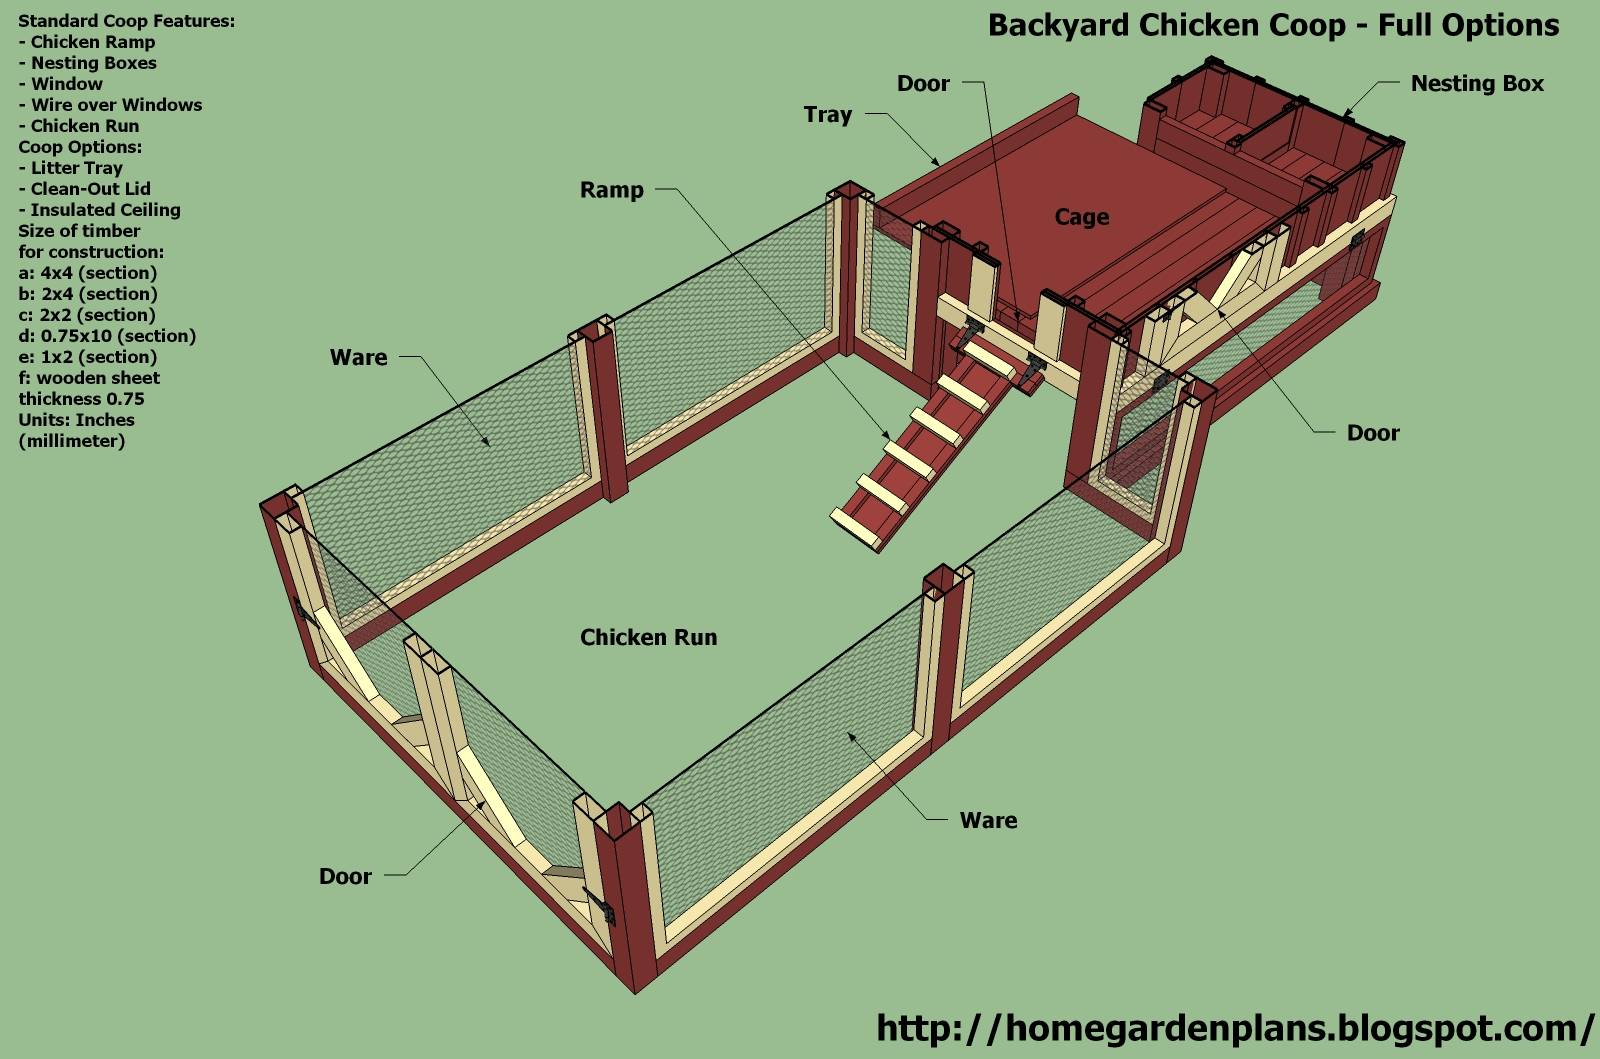 Perfect Options Backyard Chicken Coop Plans - House Plans ...